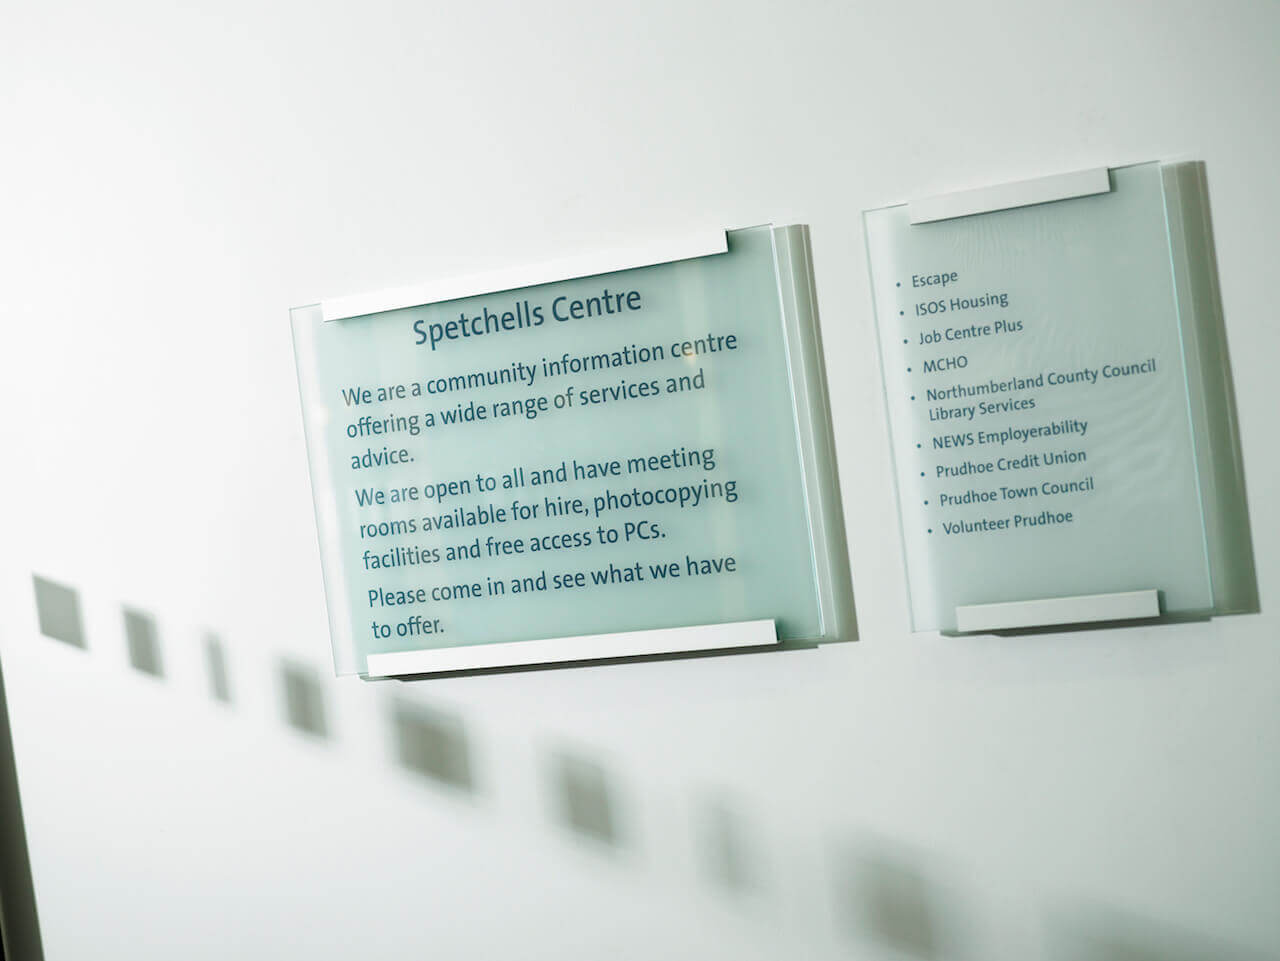 Wall mounted glass signage at the Spetchells centre